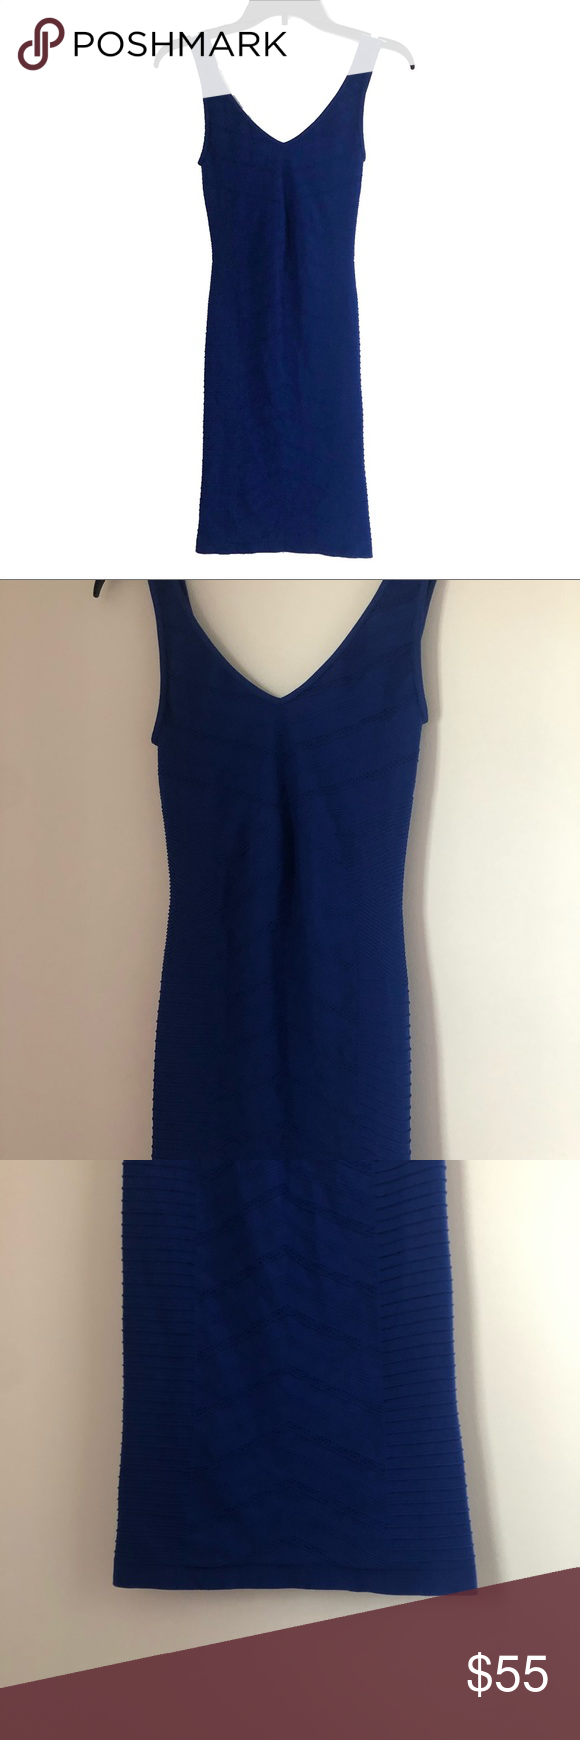 Bodycon dress baby blue and gold for girls